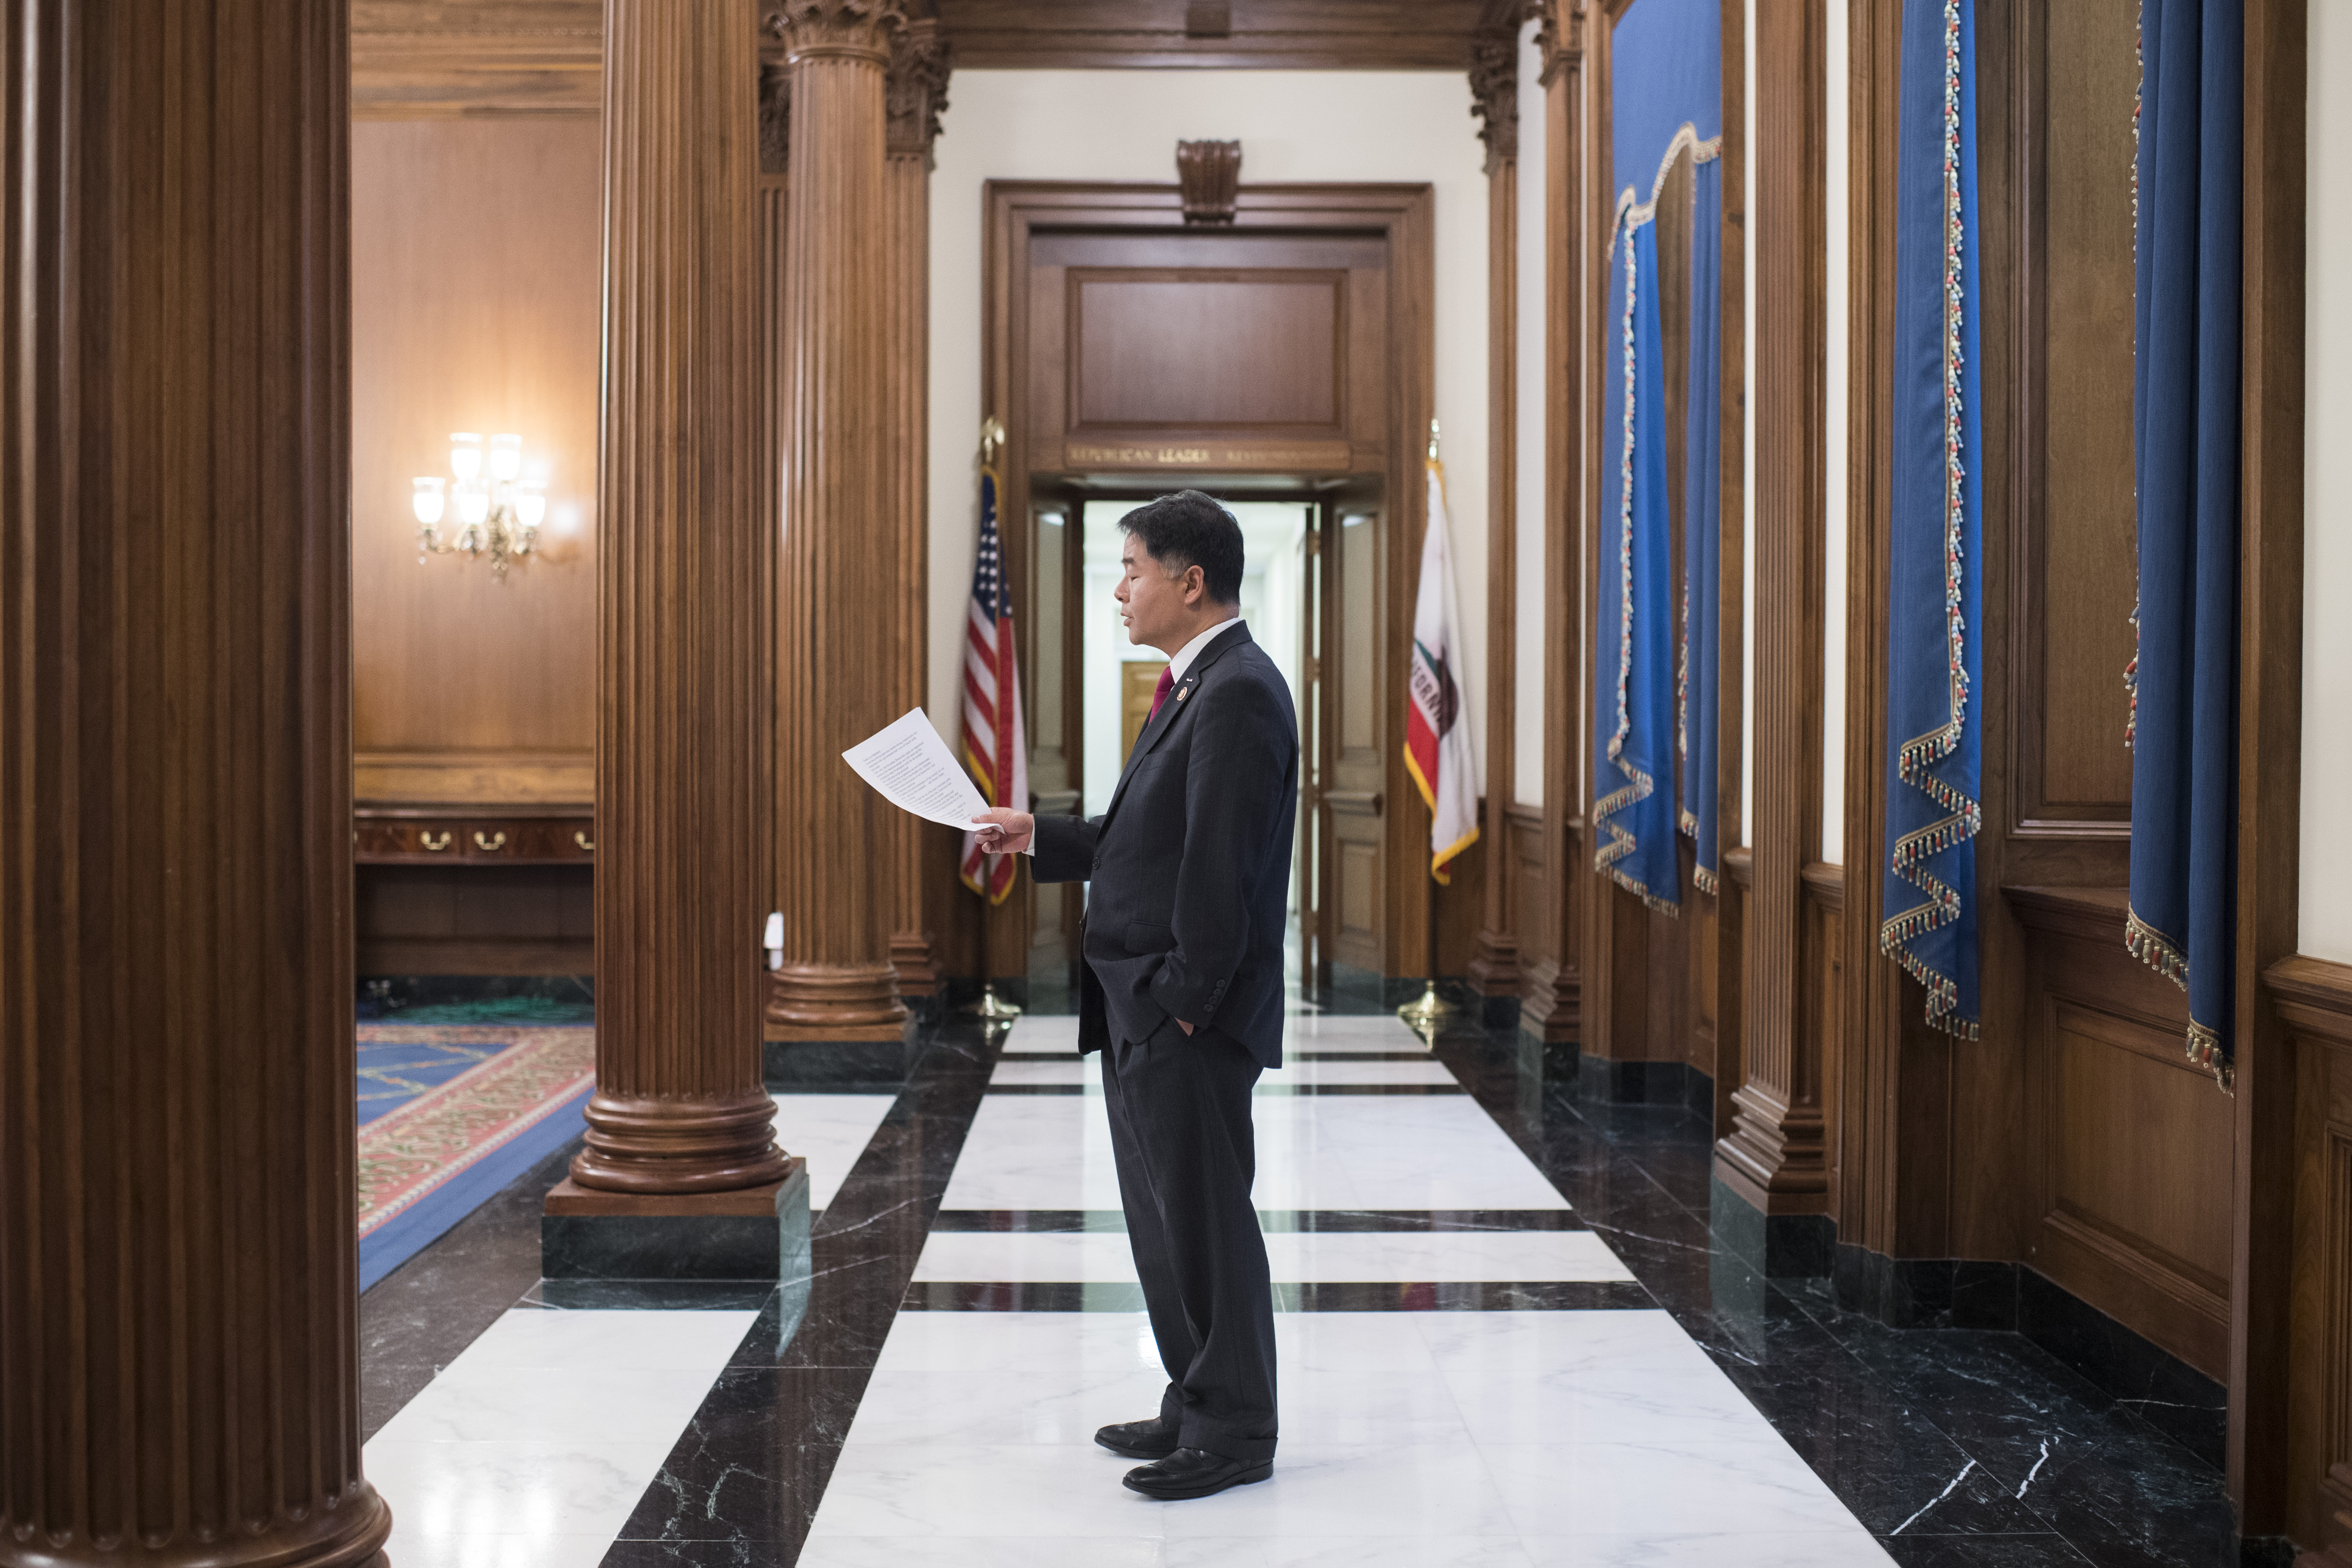 UNITED STATES - JULY 25: Rep. Ted Lieu, D-Calif., practices his remarks in the Capitol before a rally with House Democrats on their first 200 days of the 116th Congress on Thursday, July 25, 2019. (Photo By Tom Williams/CQ Roll Call)